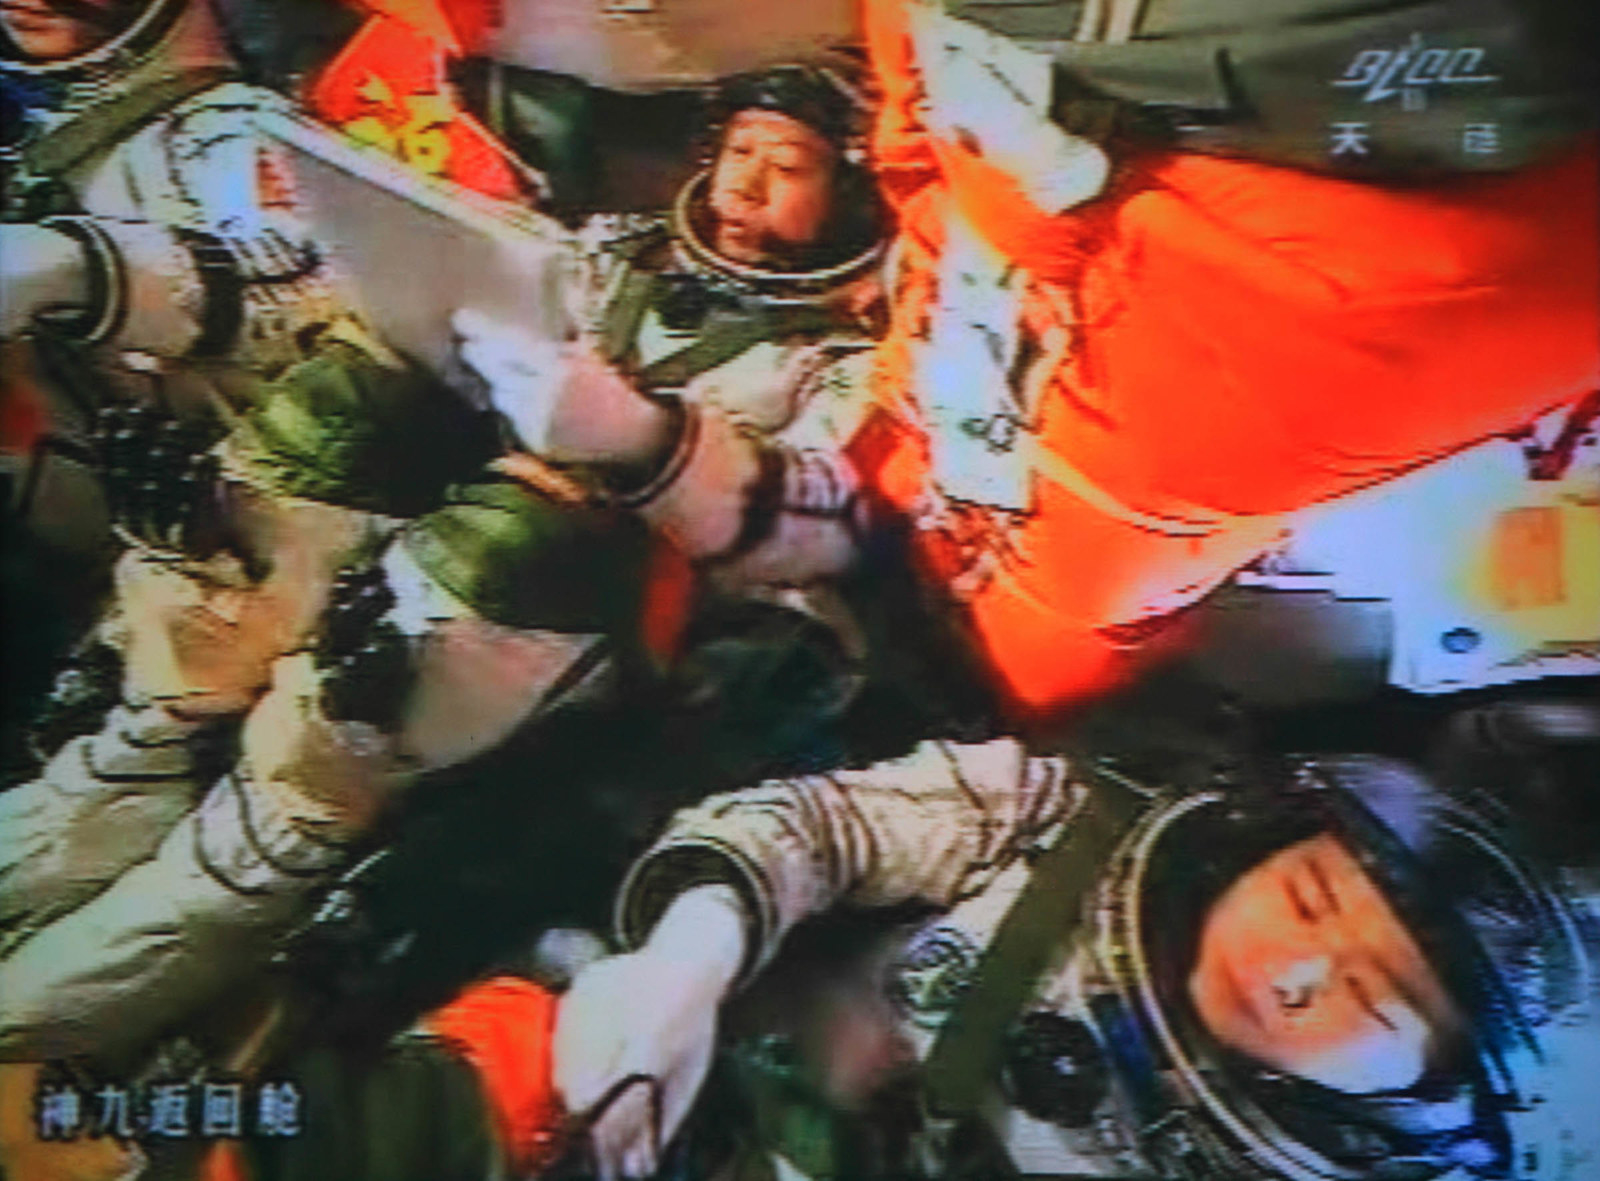 2012 A photo of the giant screen at the Jiuquan space center shows three Chinese astronauts (from left) Liu Wang, Jing Haipeng, and Liu Yang in the Shenzhou-9 spacecraft in preparation for docking with the Tiangong-1 module on July 18, 2012. Three Chinese astronauts entered an orbiting module for the first time, a key step towards the nation's first space station, in a move broadcast live on China's state television network. China aims to complete construction of a space station by 2020, a goal that requires it to have perfect docking technology.